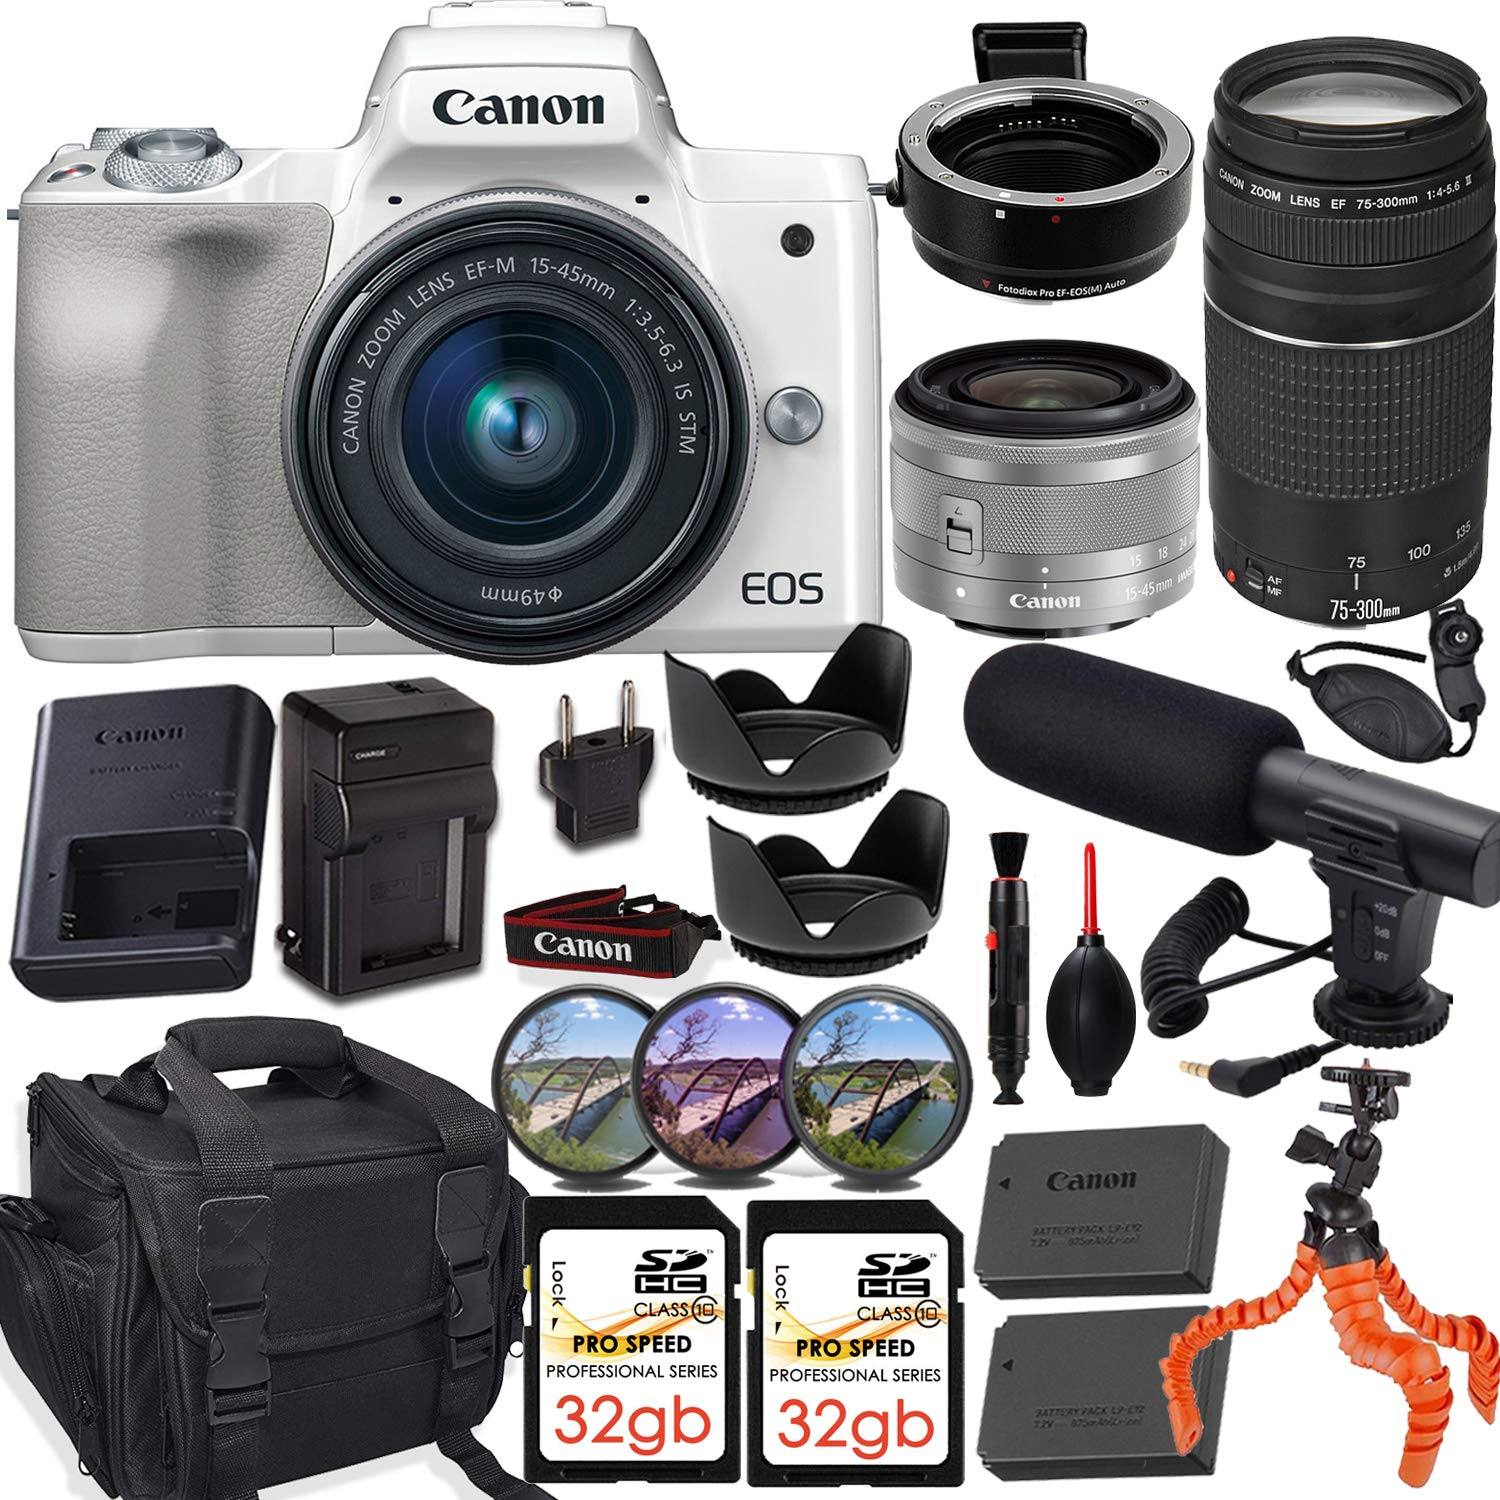 Canon EOS M50 Mirrorless Camera (White) w/Canon 15-45mm f/3.5-6.3 is STM & EF 75-300mm f/4-5.6 III Lens + M-Adapter & Exclusive Video-Accessory Bundle